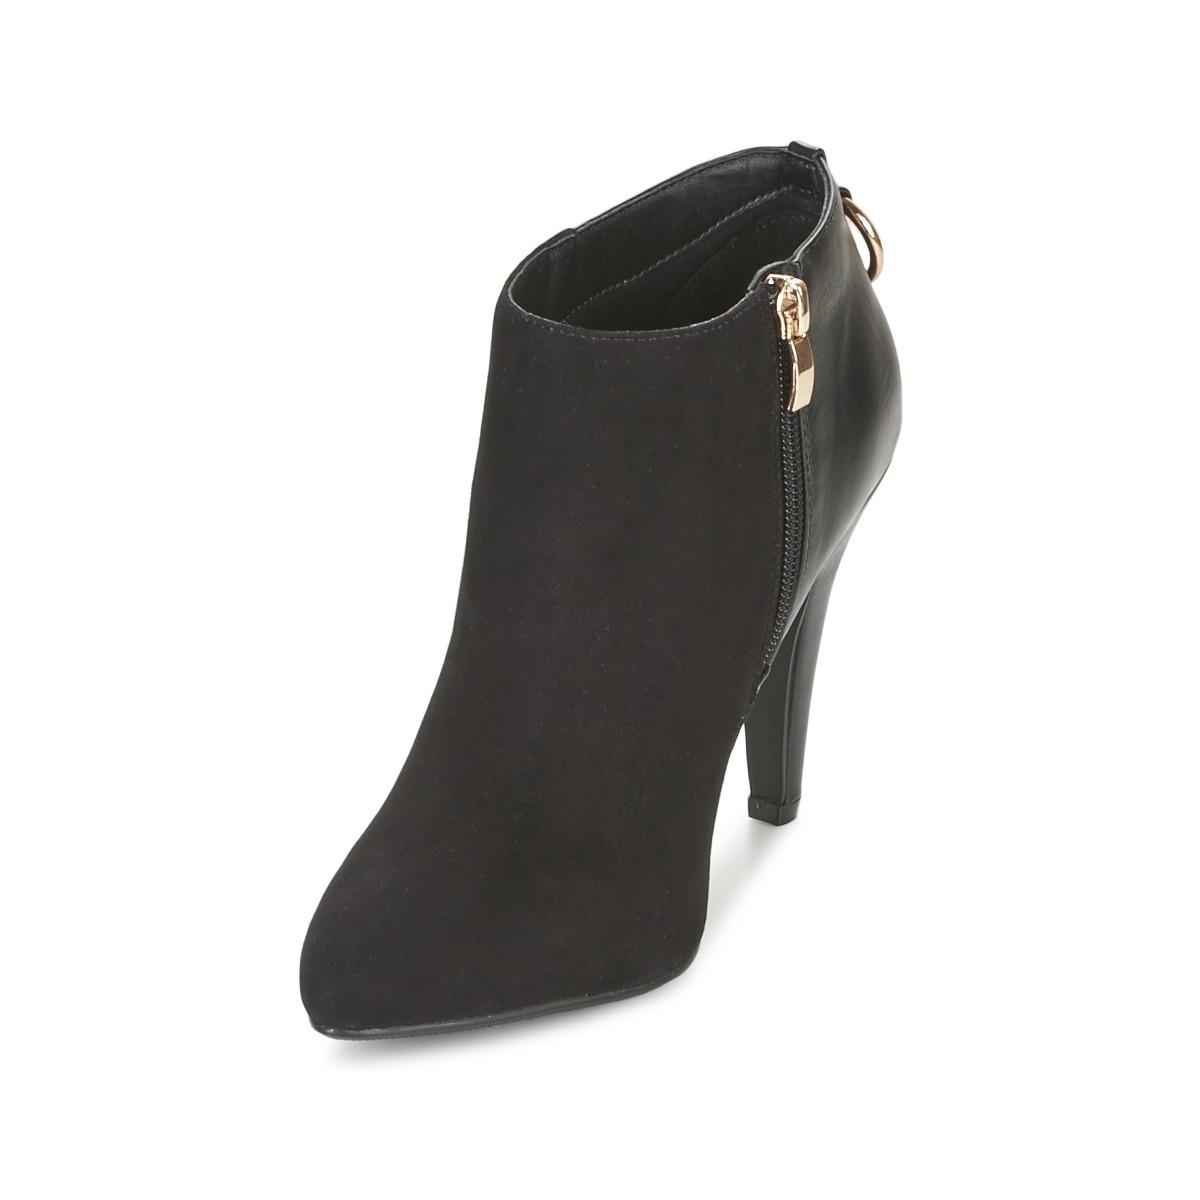 Moony Mood Emrine Women's Low Ankle Boots In Black